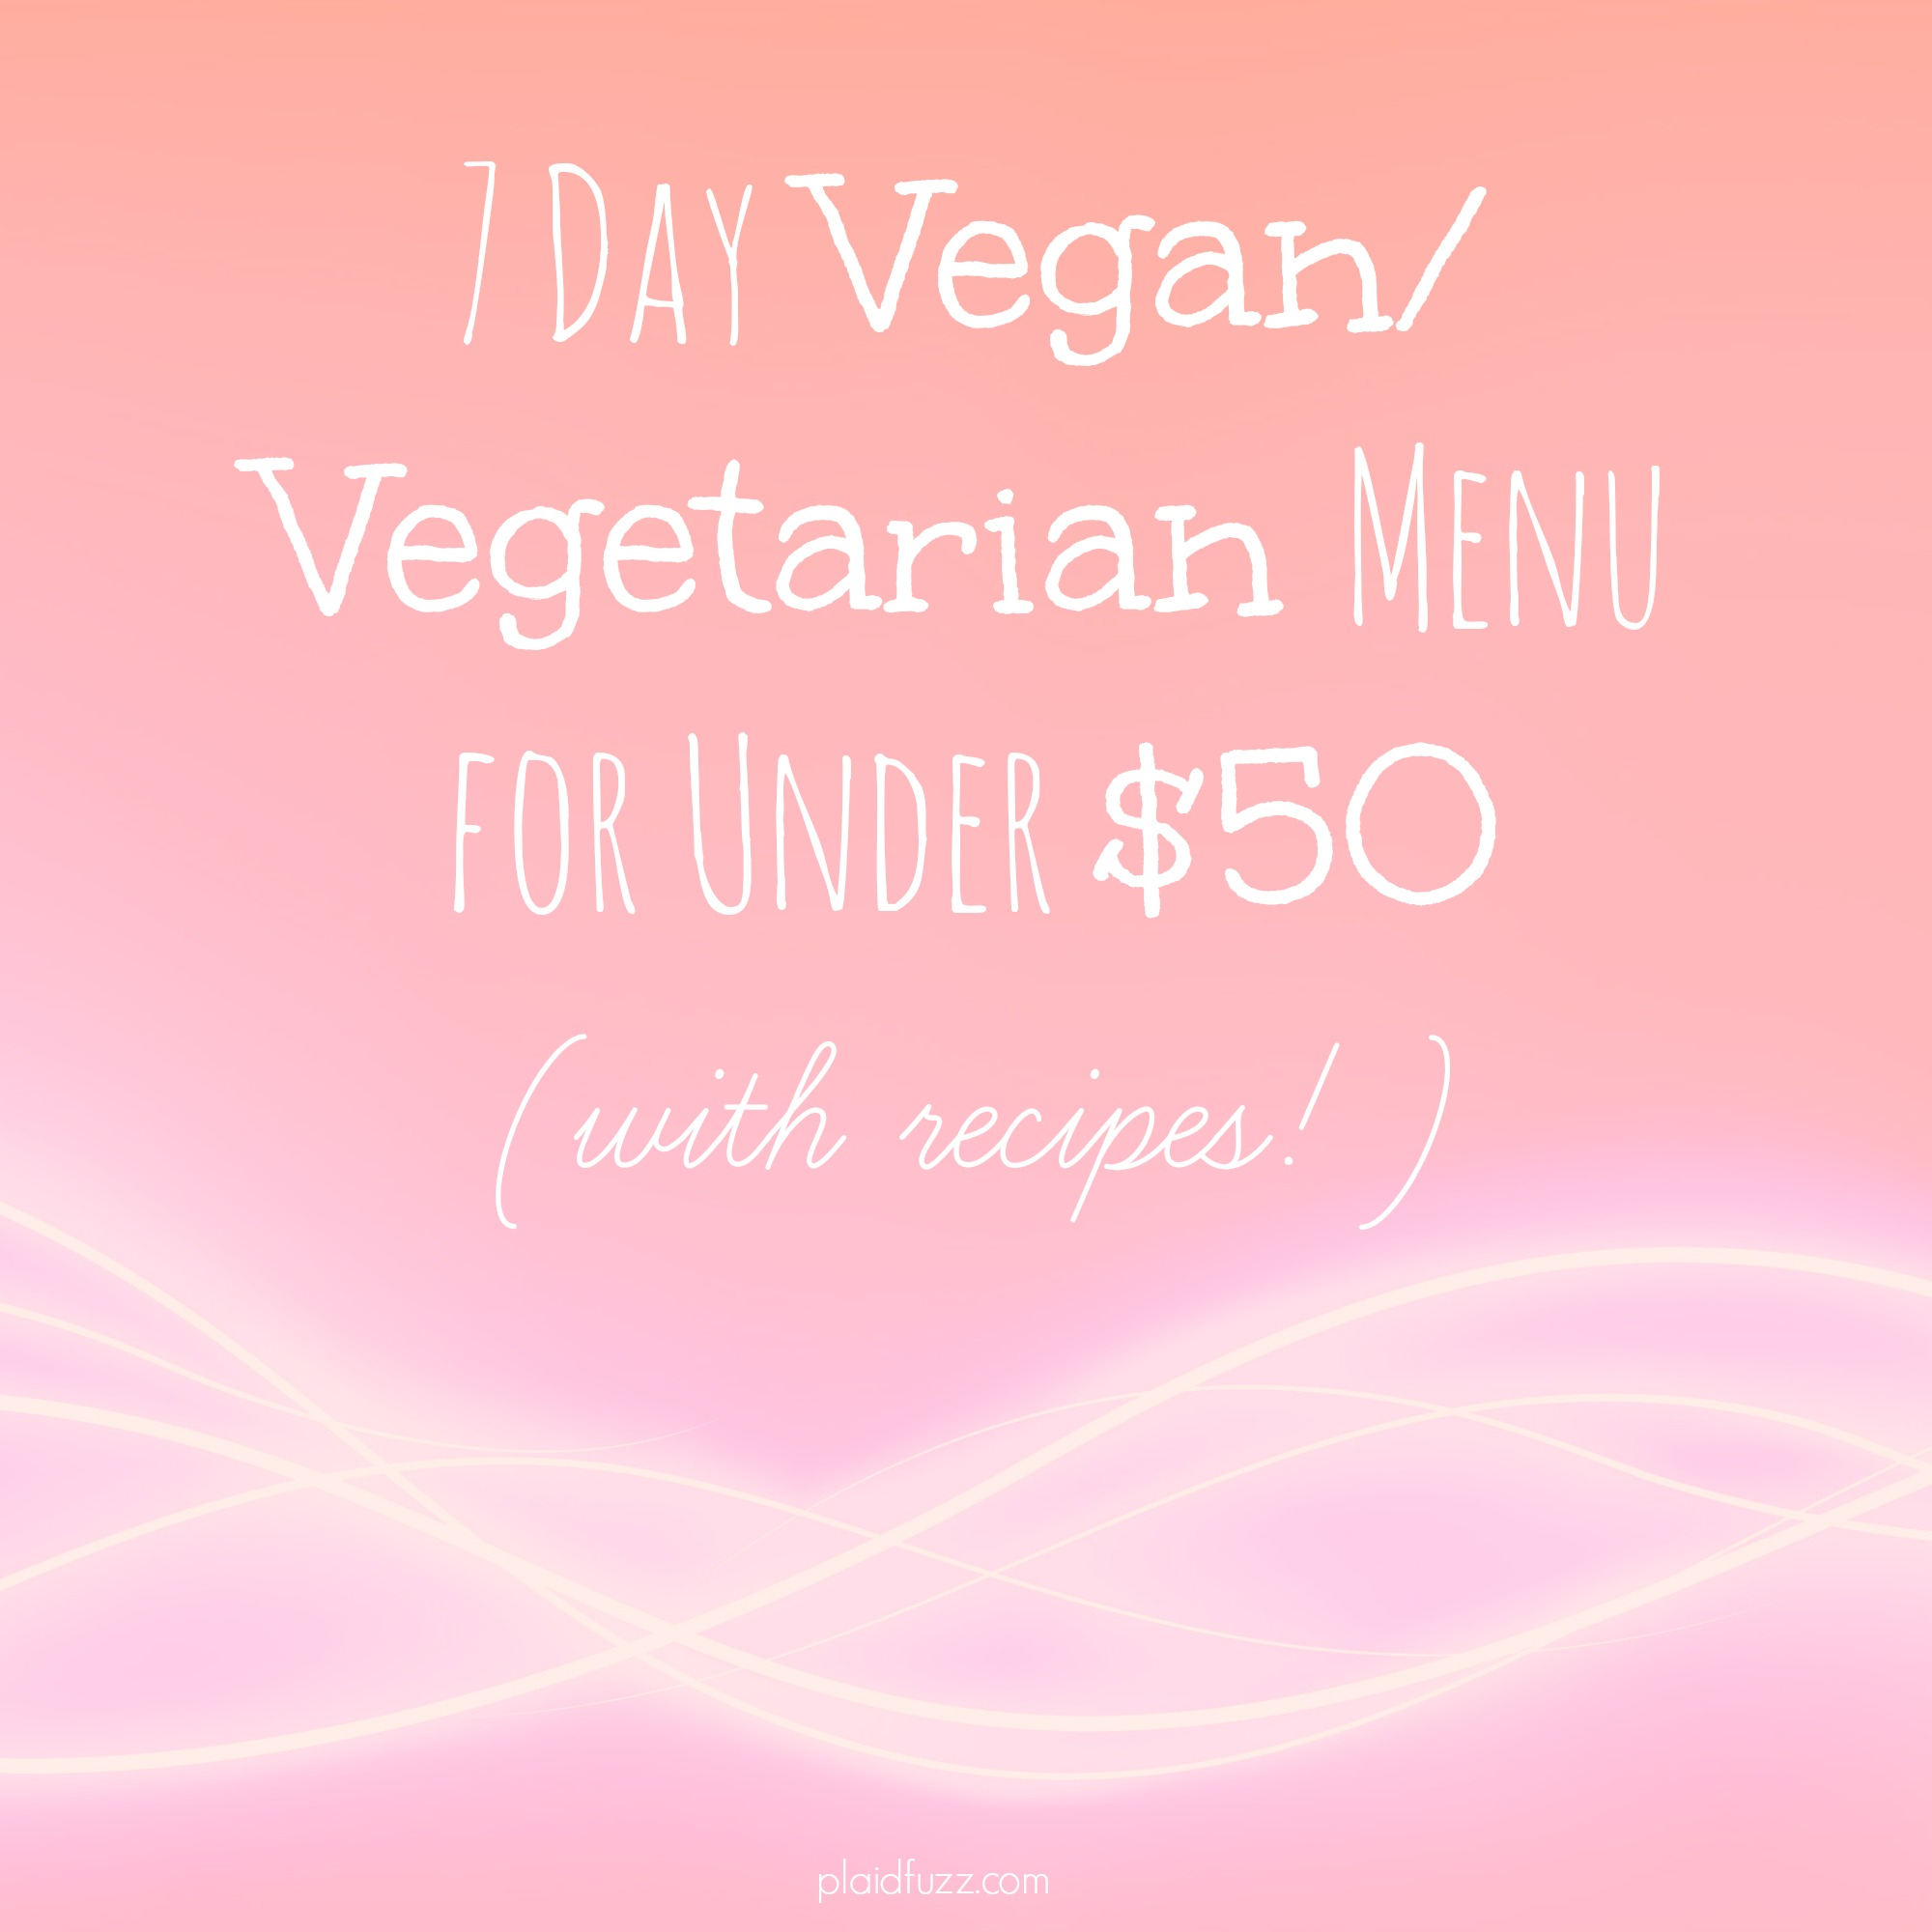 Weekly Vegan/Vegetarian Meal Plan For Under $50 (with recipes!)